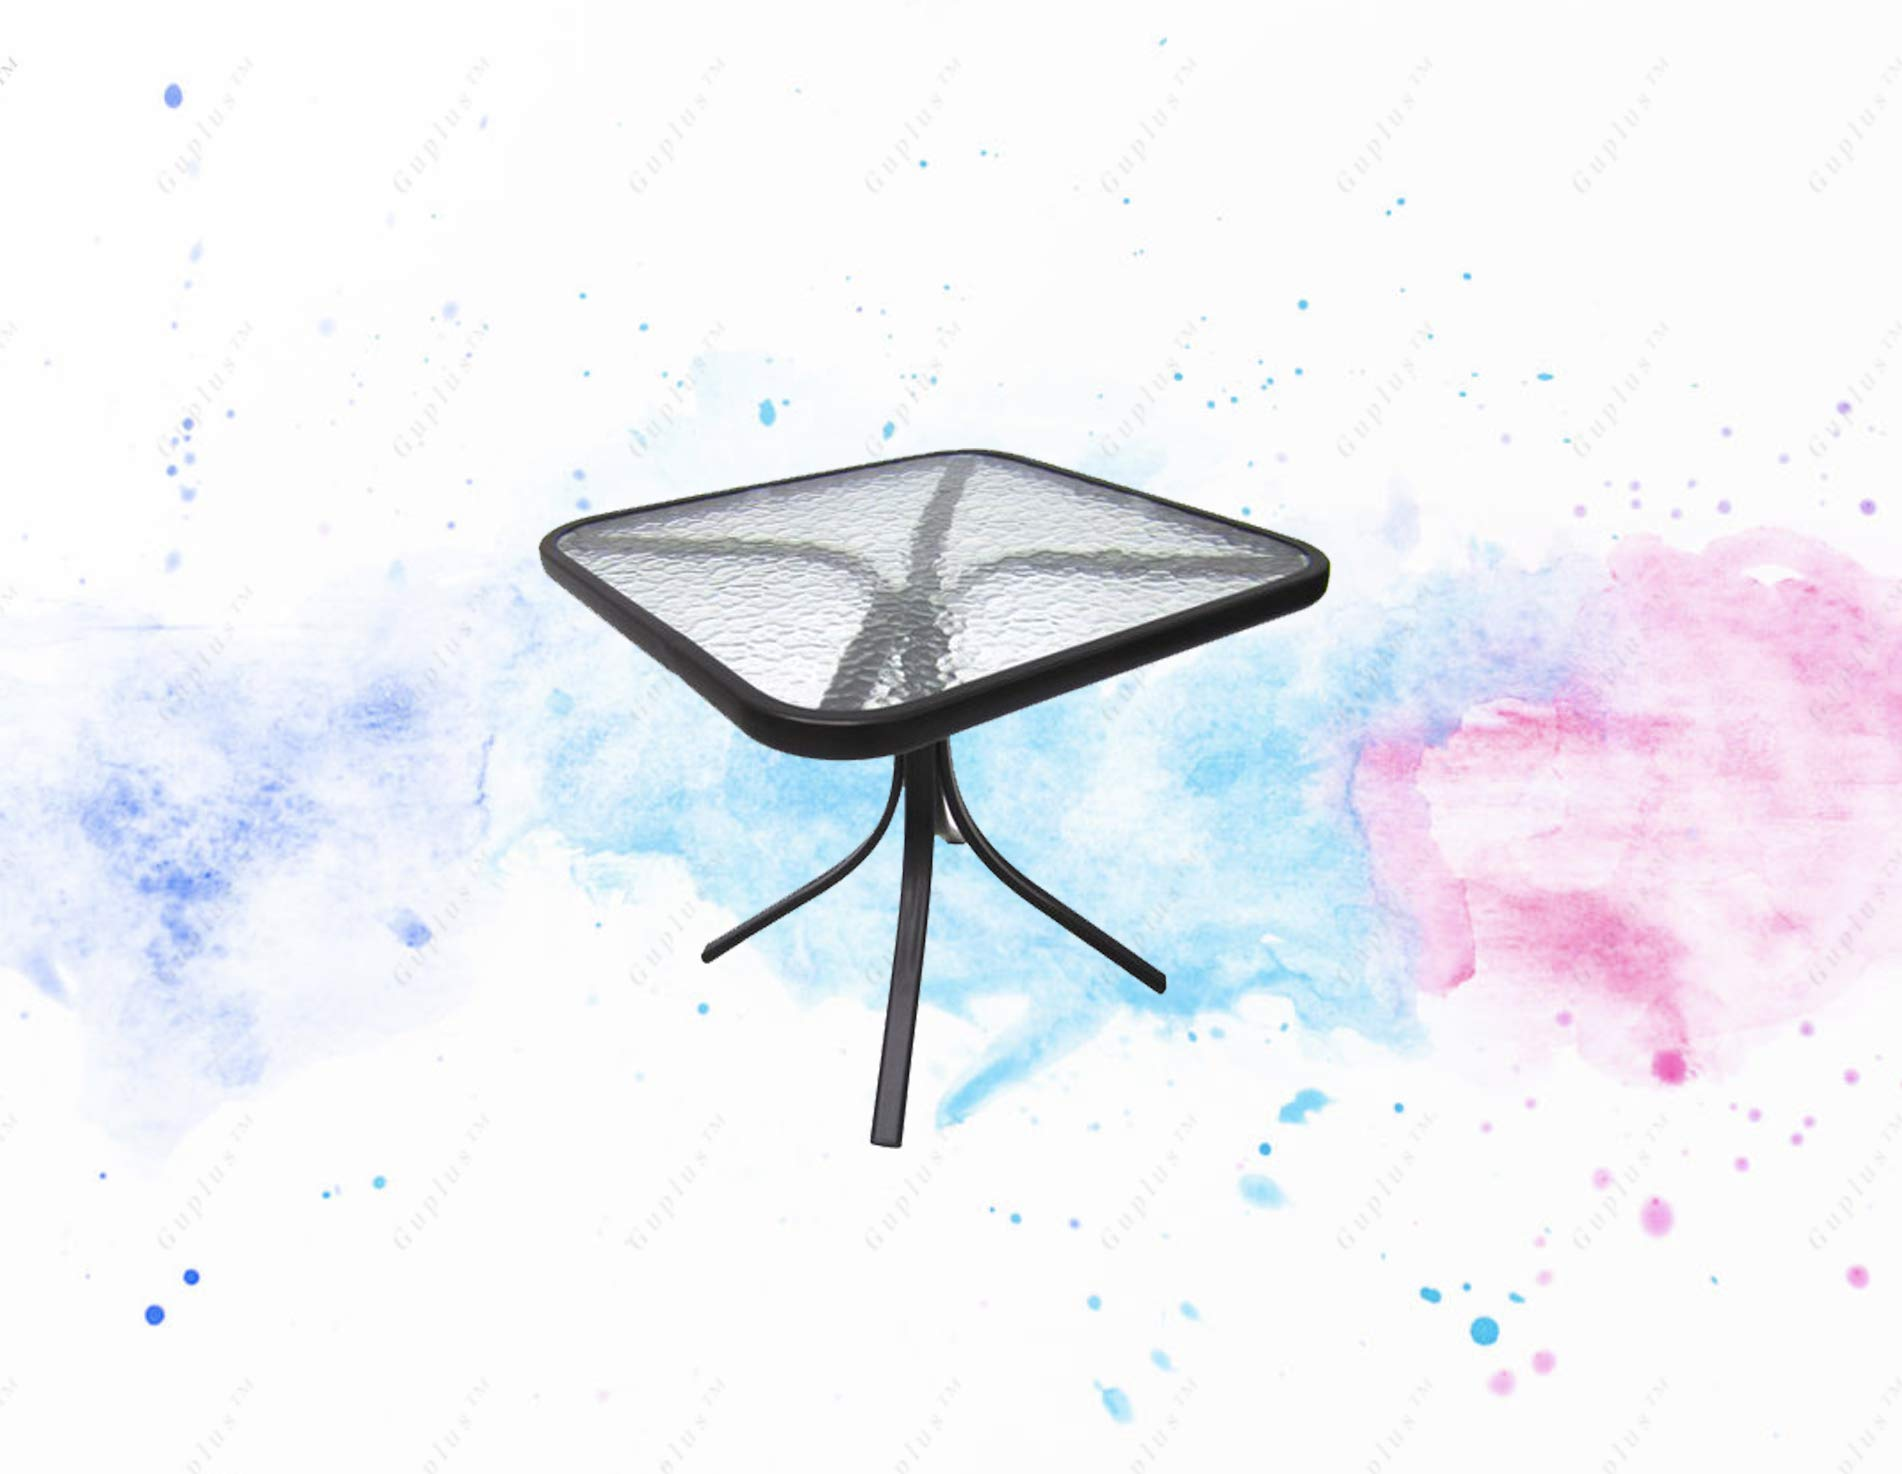 GUPLUS-Square Glass Patio Side Table This Square Glass Top Side Table Makes an Ideal complement to Any Patio, Deck, sunroom or Backyard. It Features a Compact Design so it can Even be Used on a